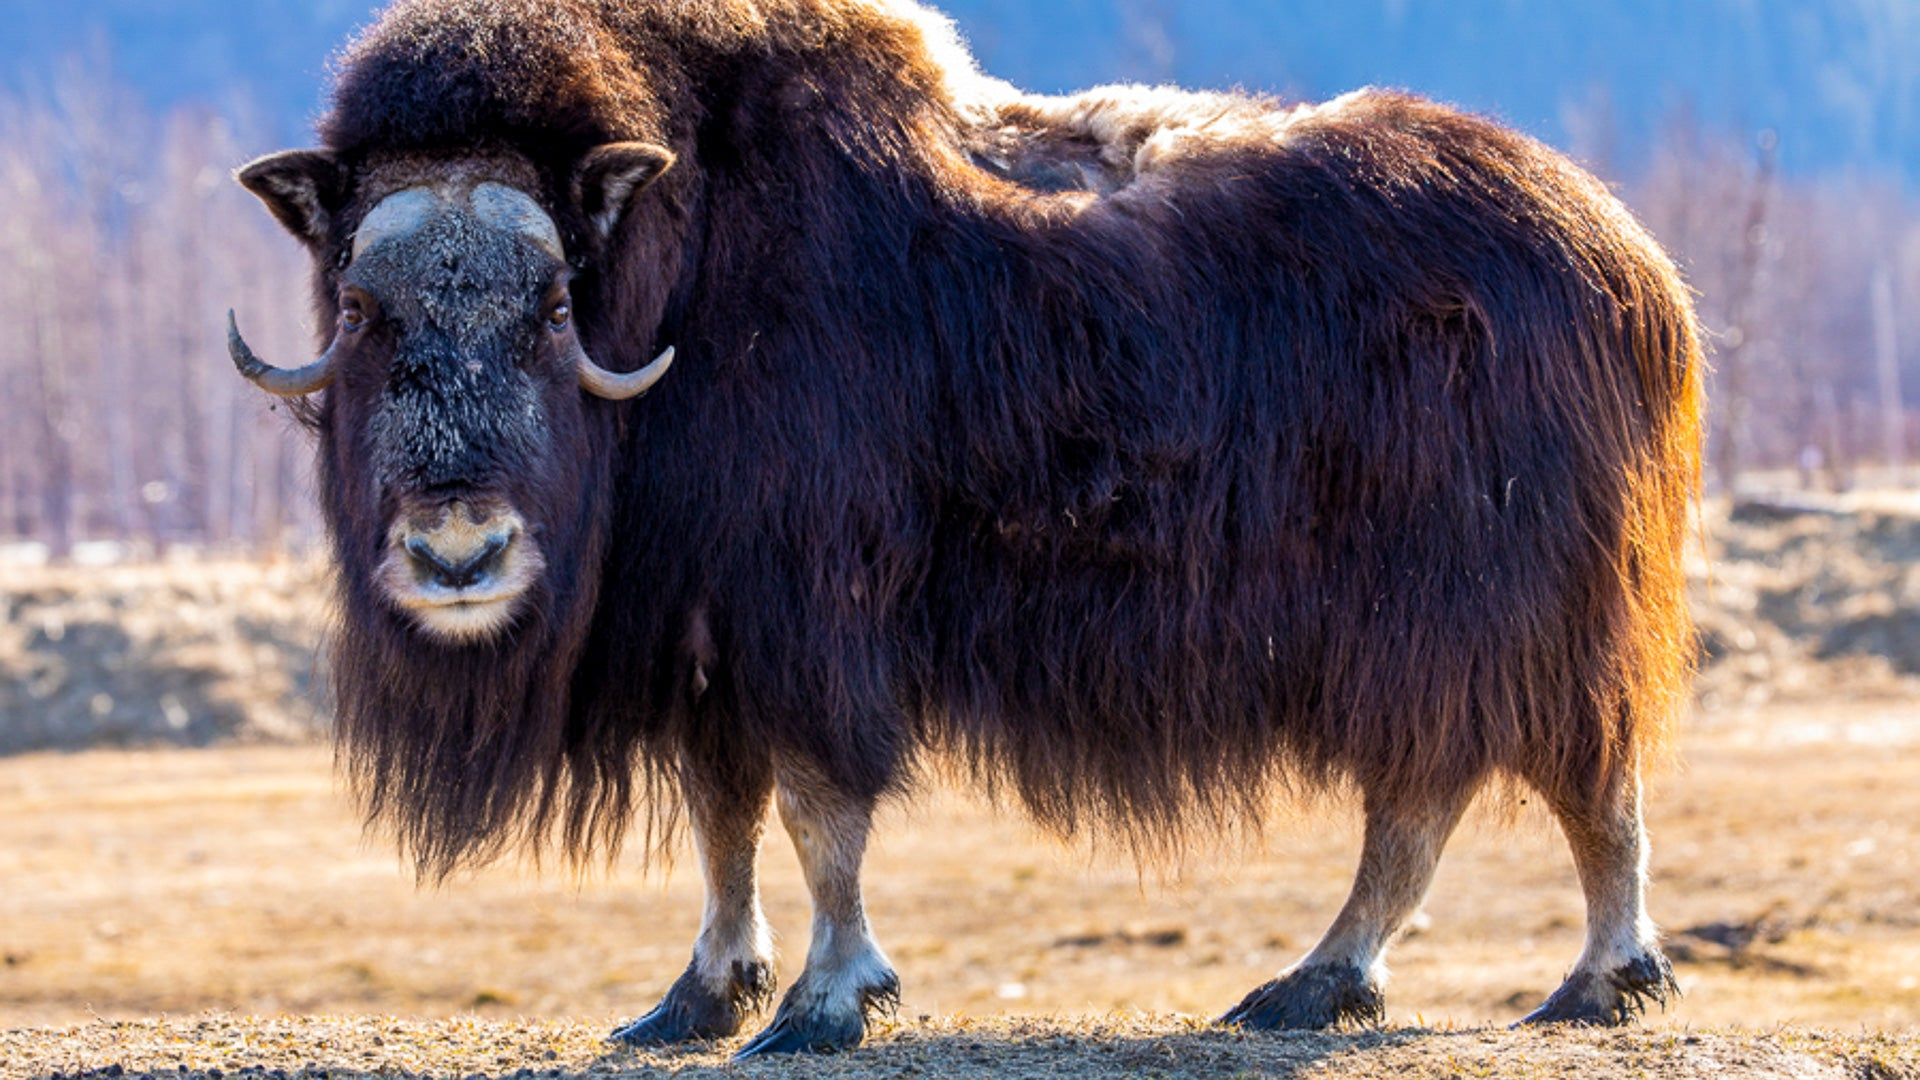 Muskox standing in warmer weather. MuskOx Men's apparel. Muskox insulation